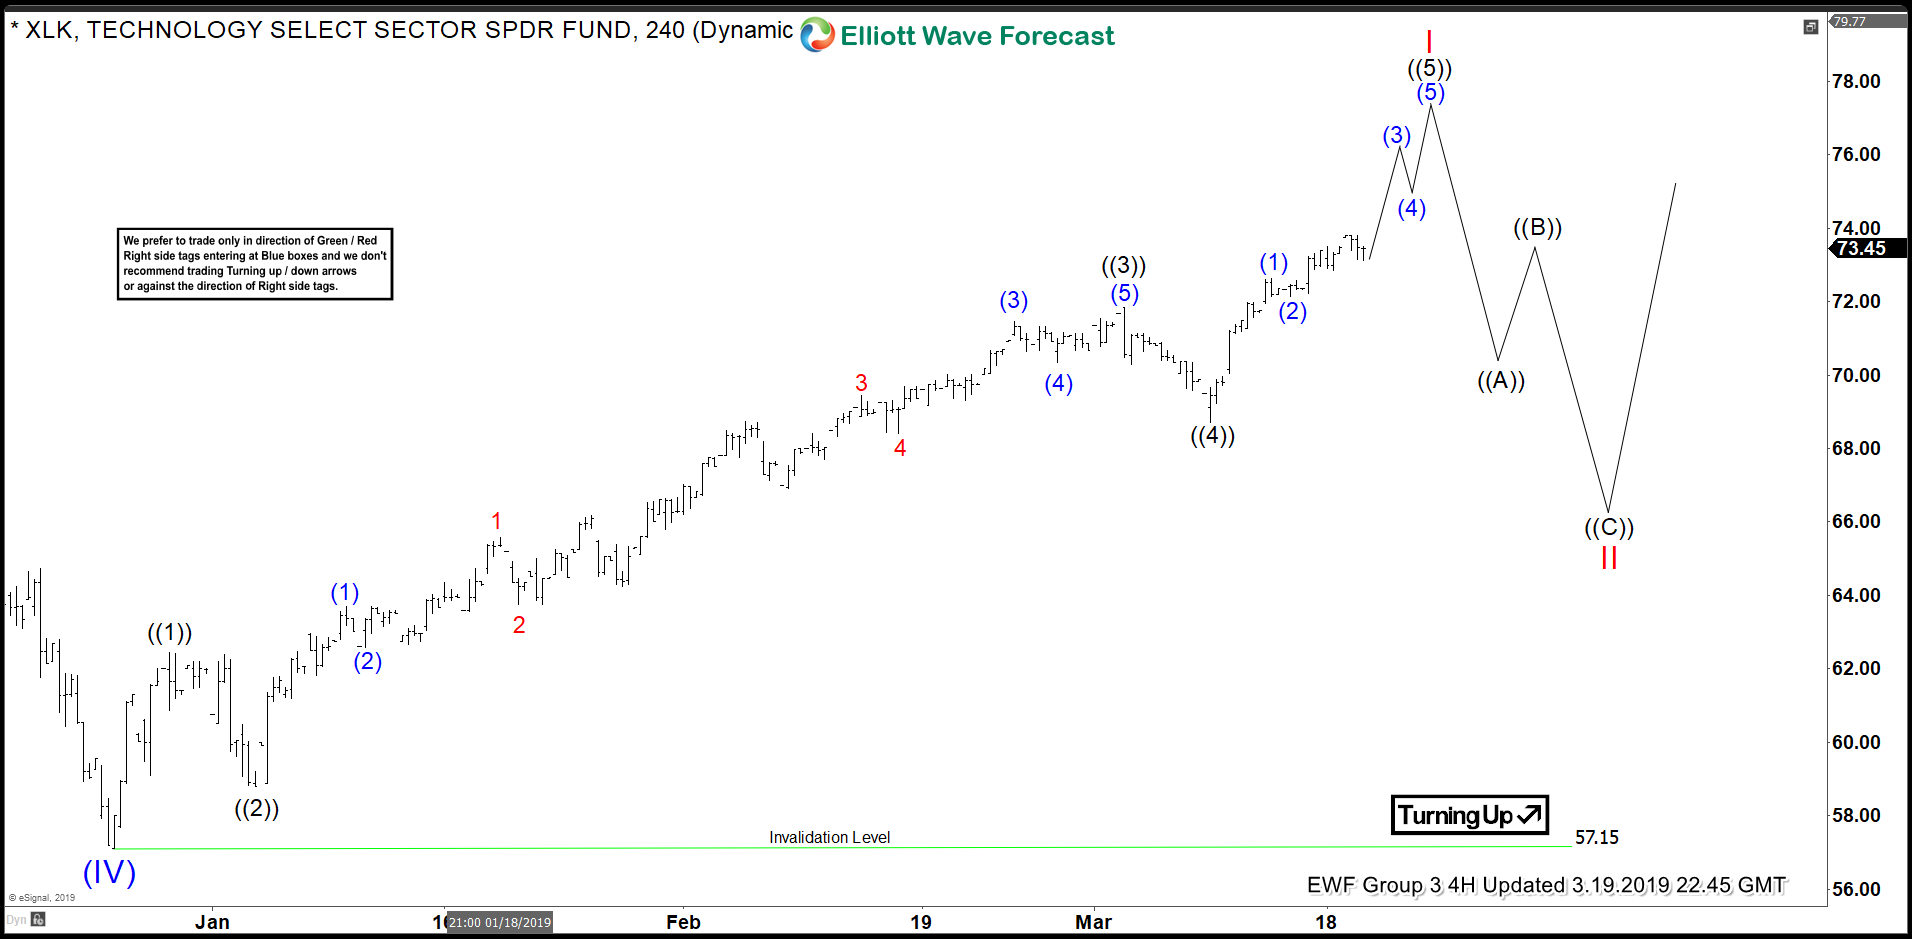 Elliott Waves from December Low Suggests XLK to Make New Highs